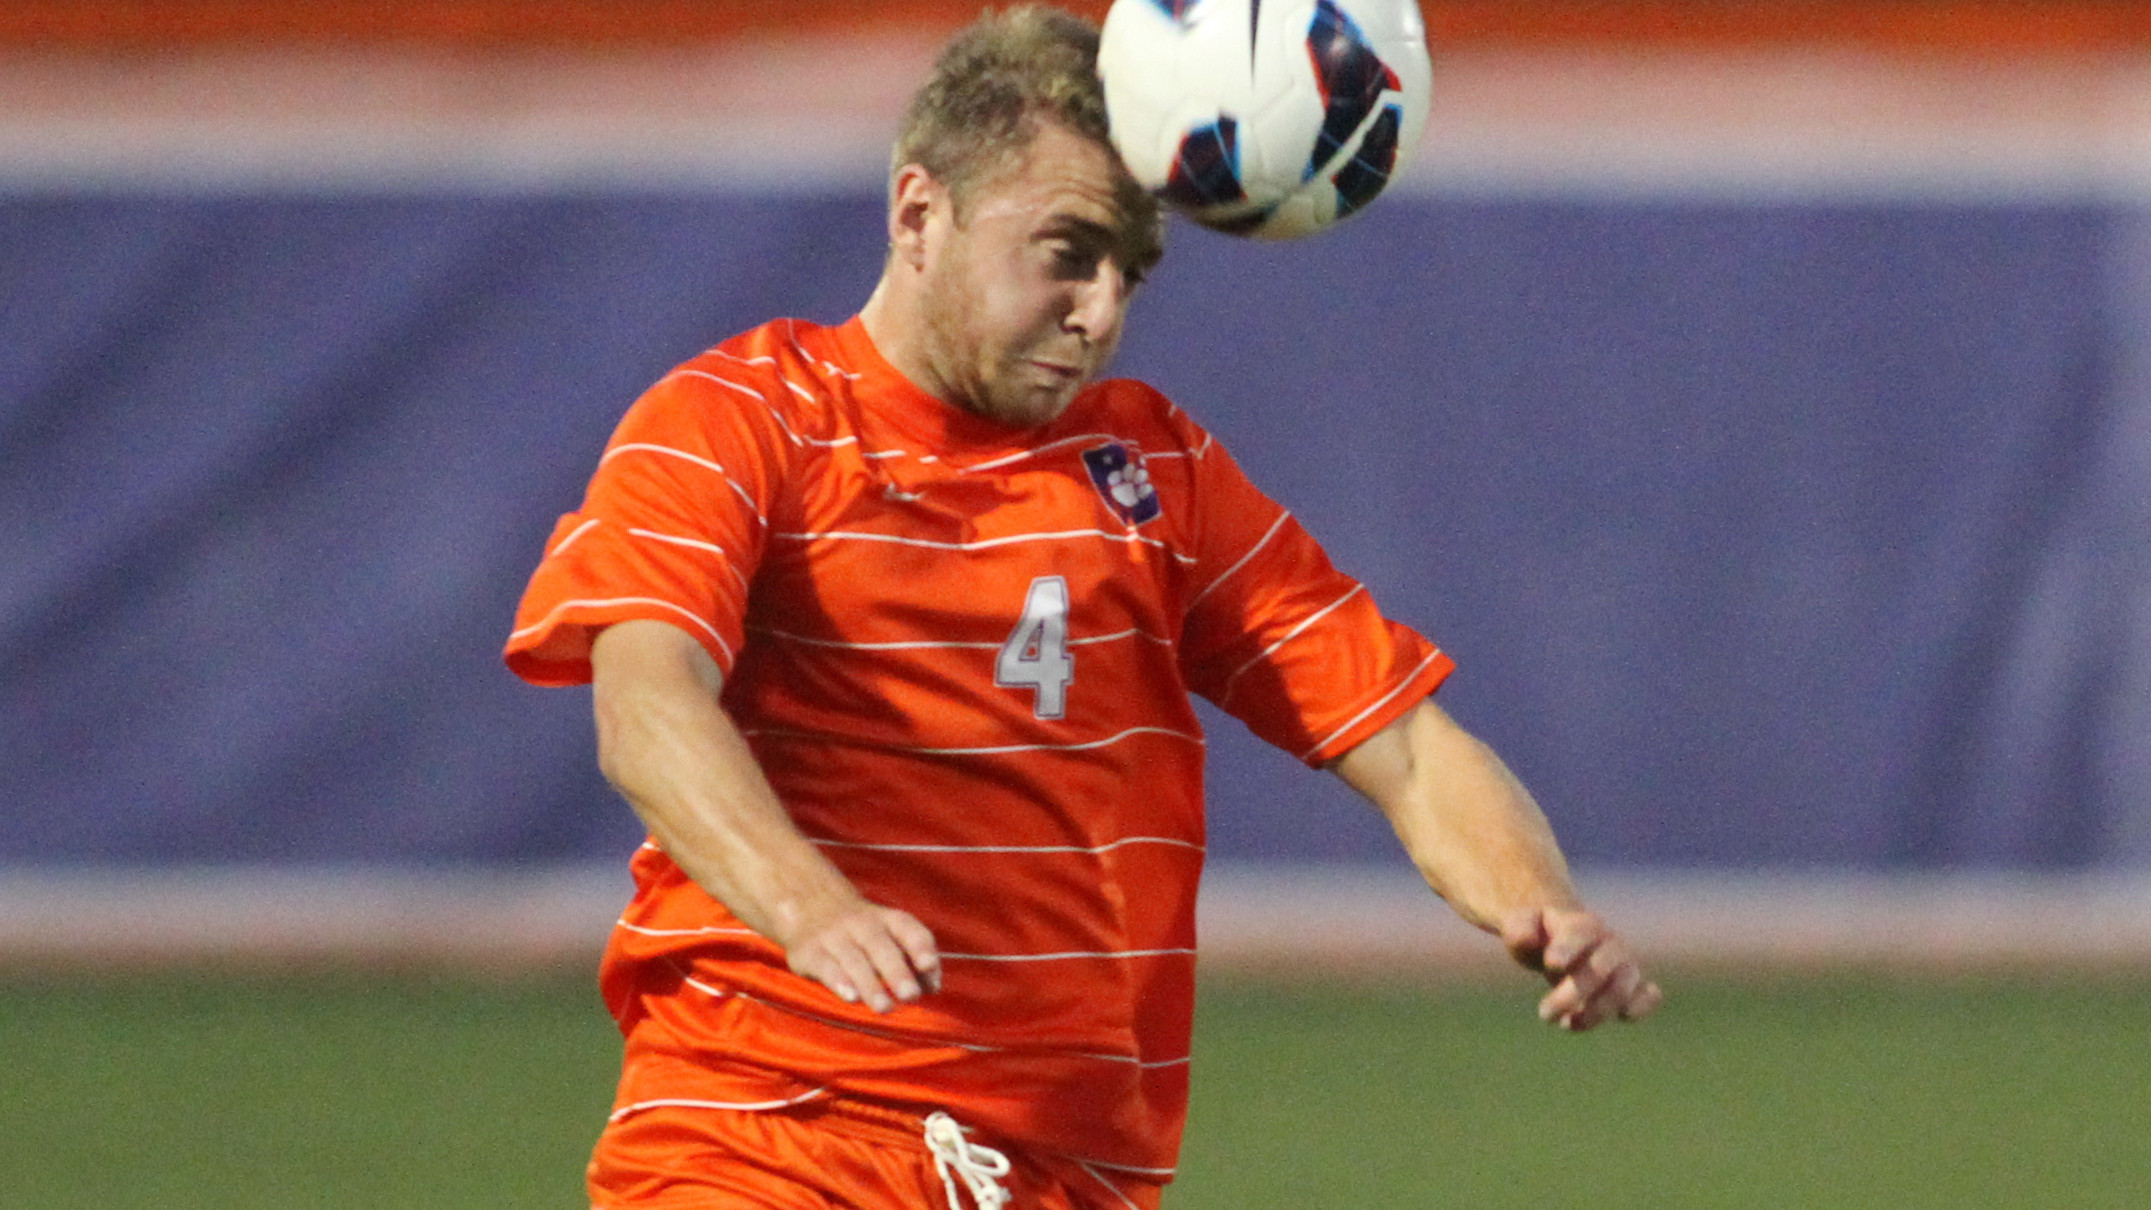 #9 Clemson Men's Soccer Will Play Pittsburgh Friday Night